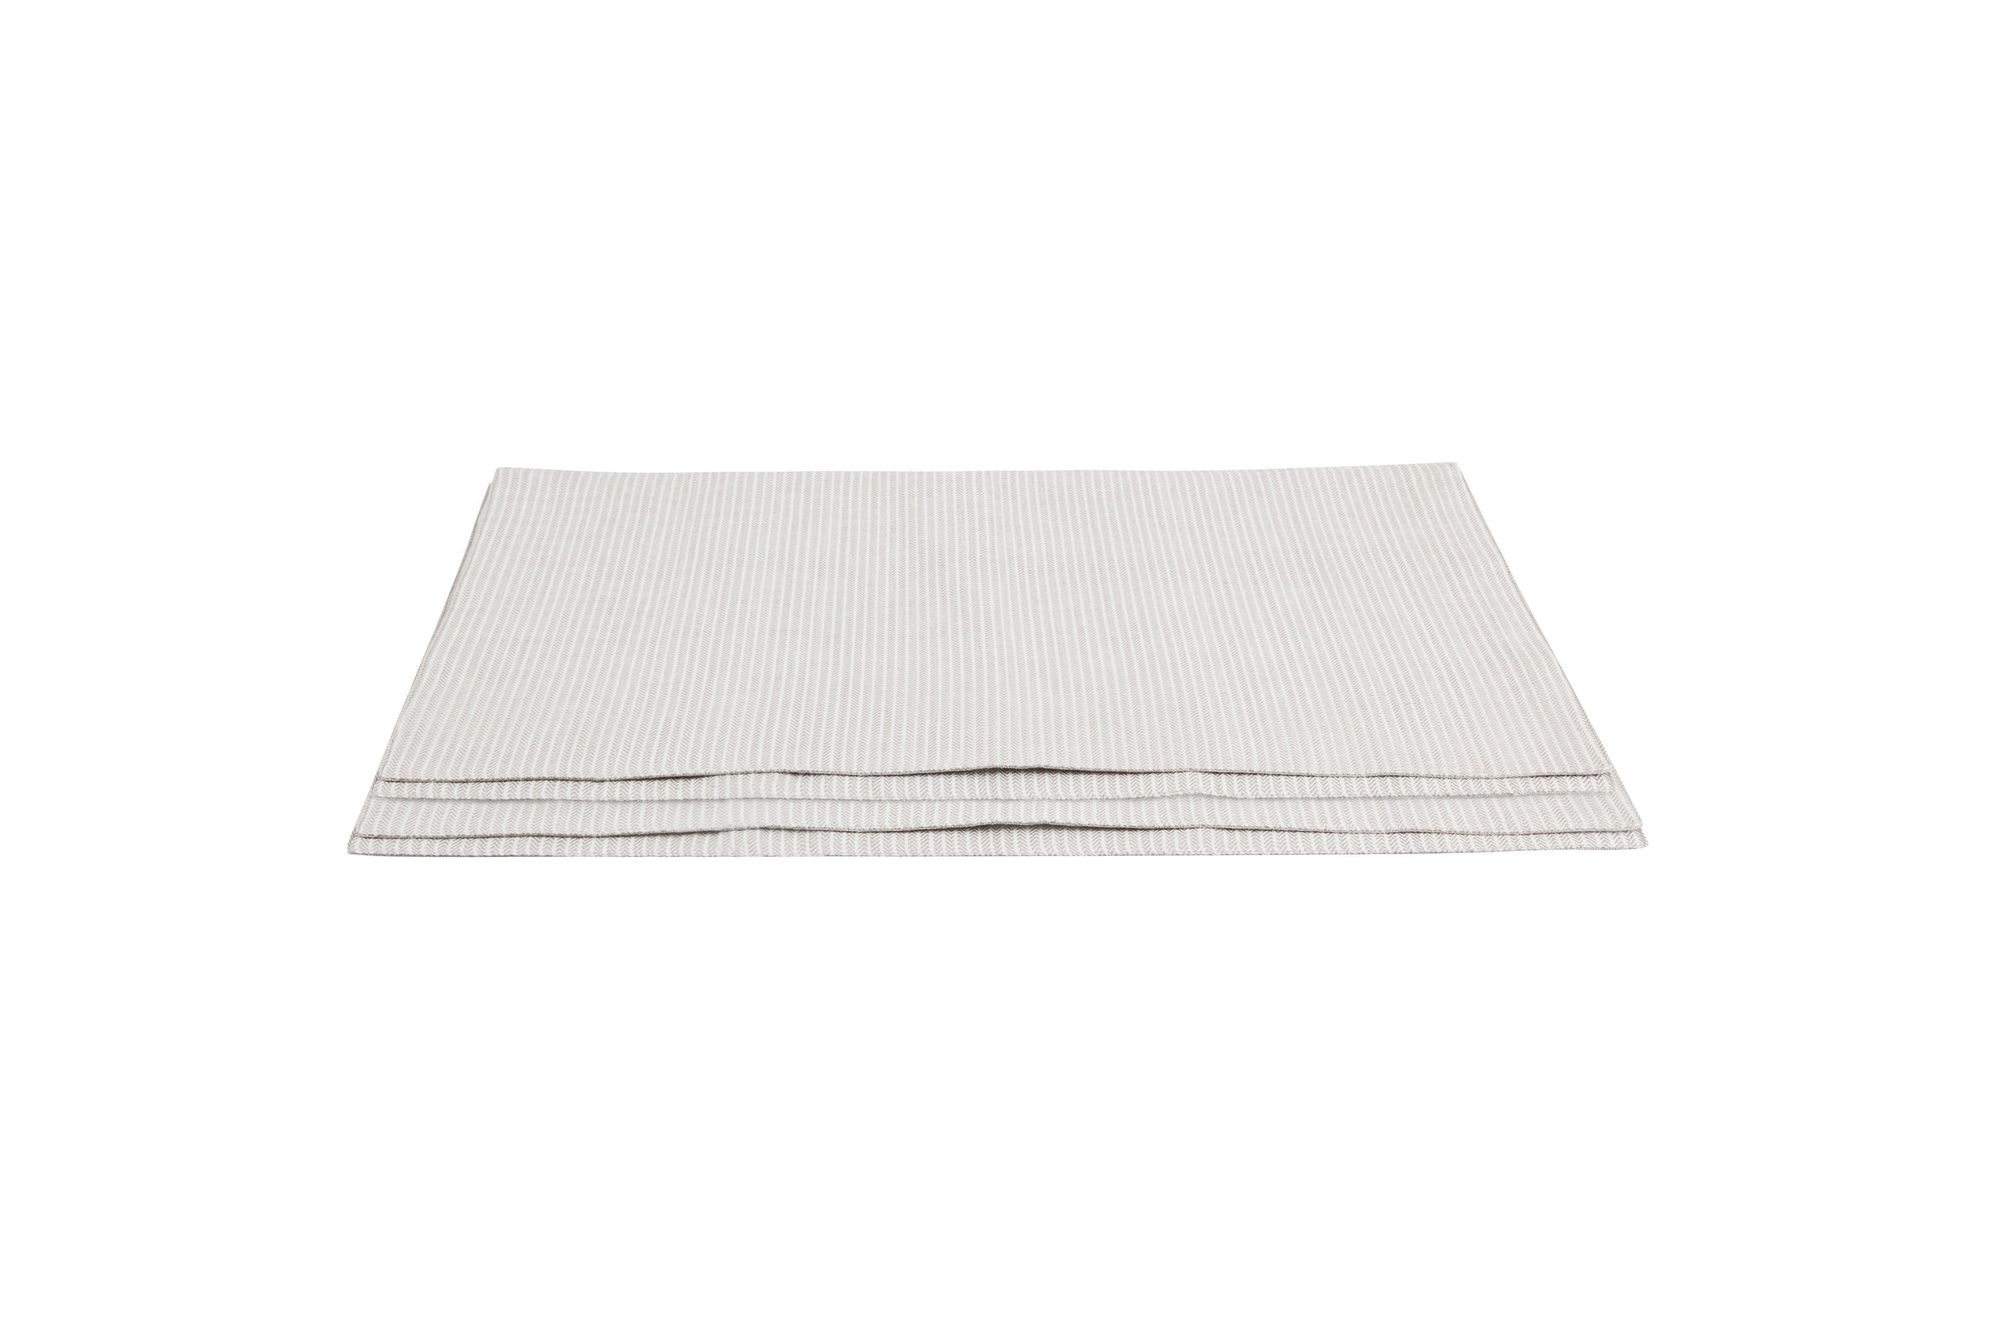 Denby Natural Canvas Placemats - Set of 4 Cotton Placemats 38 x 48cm thumb 2